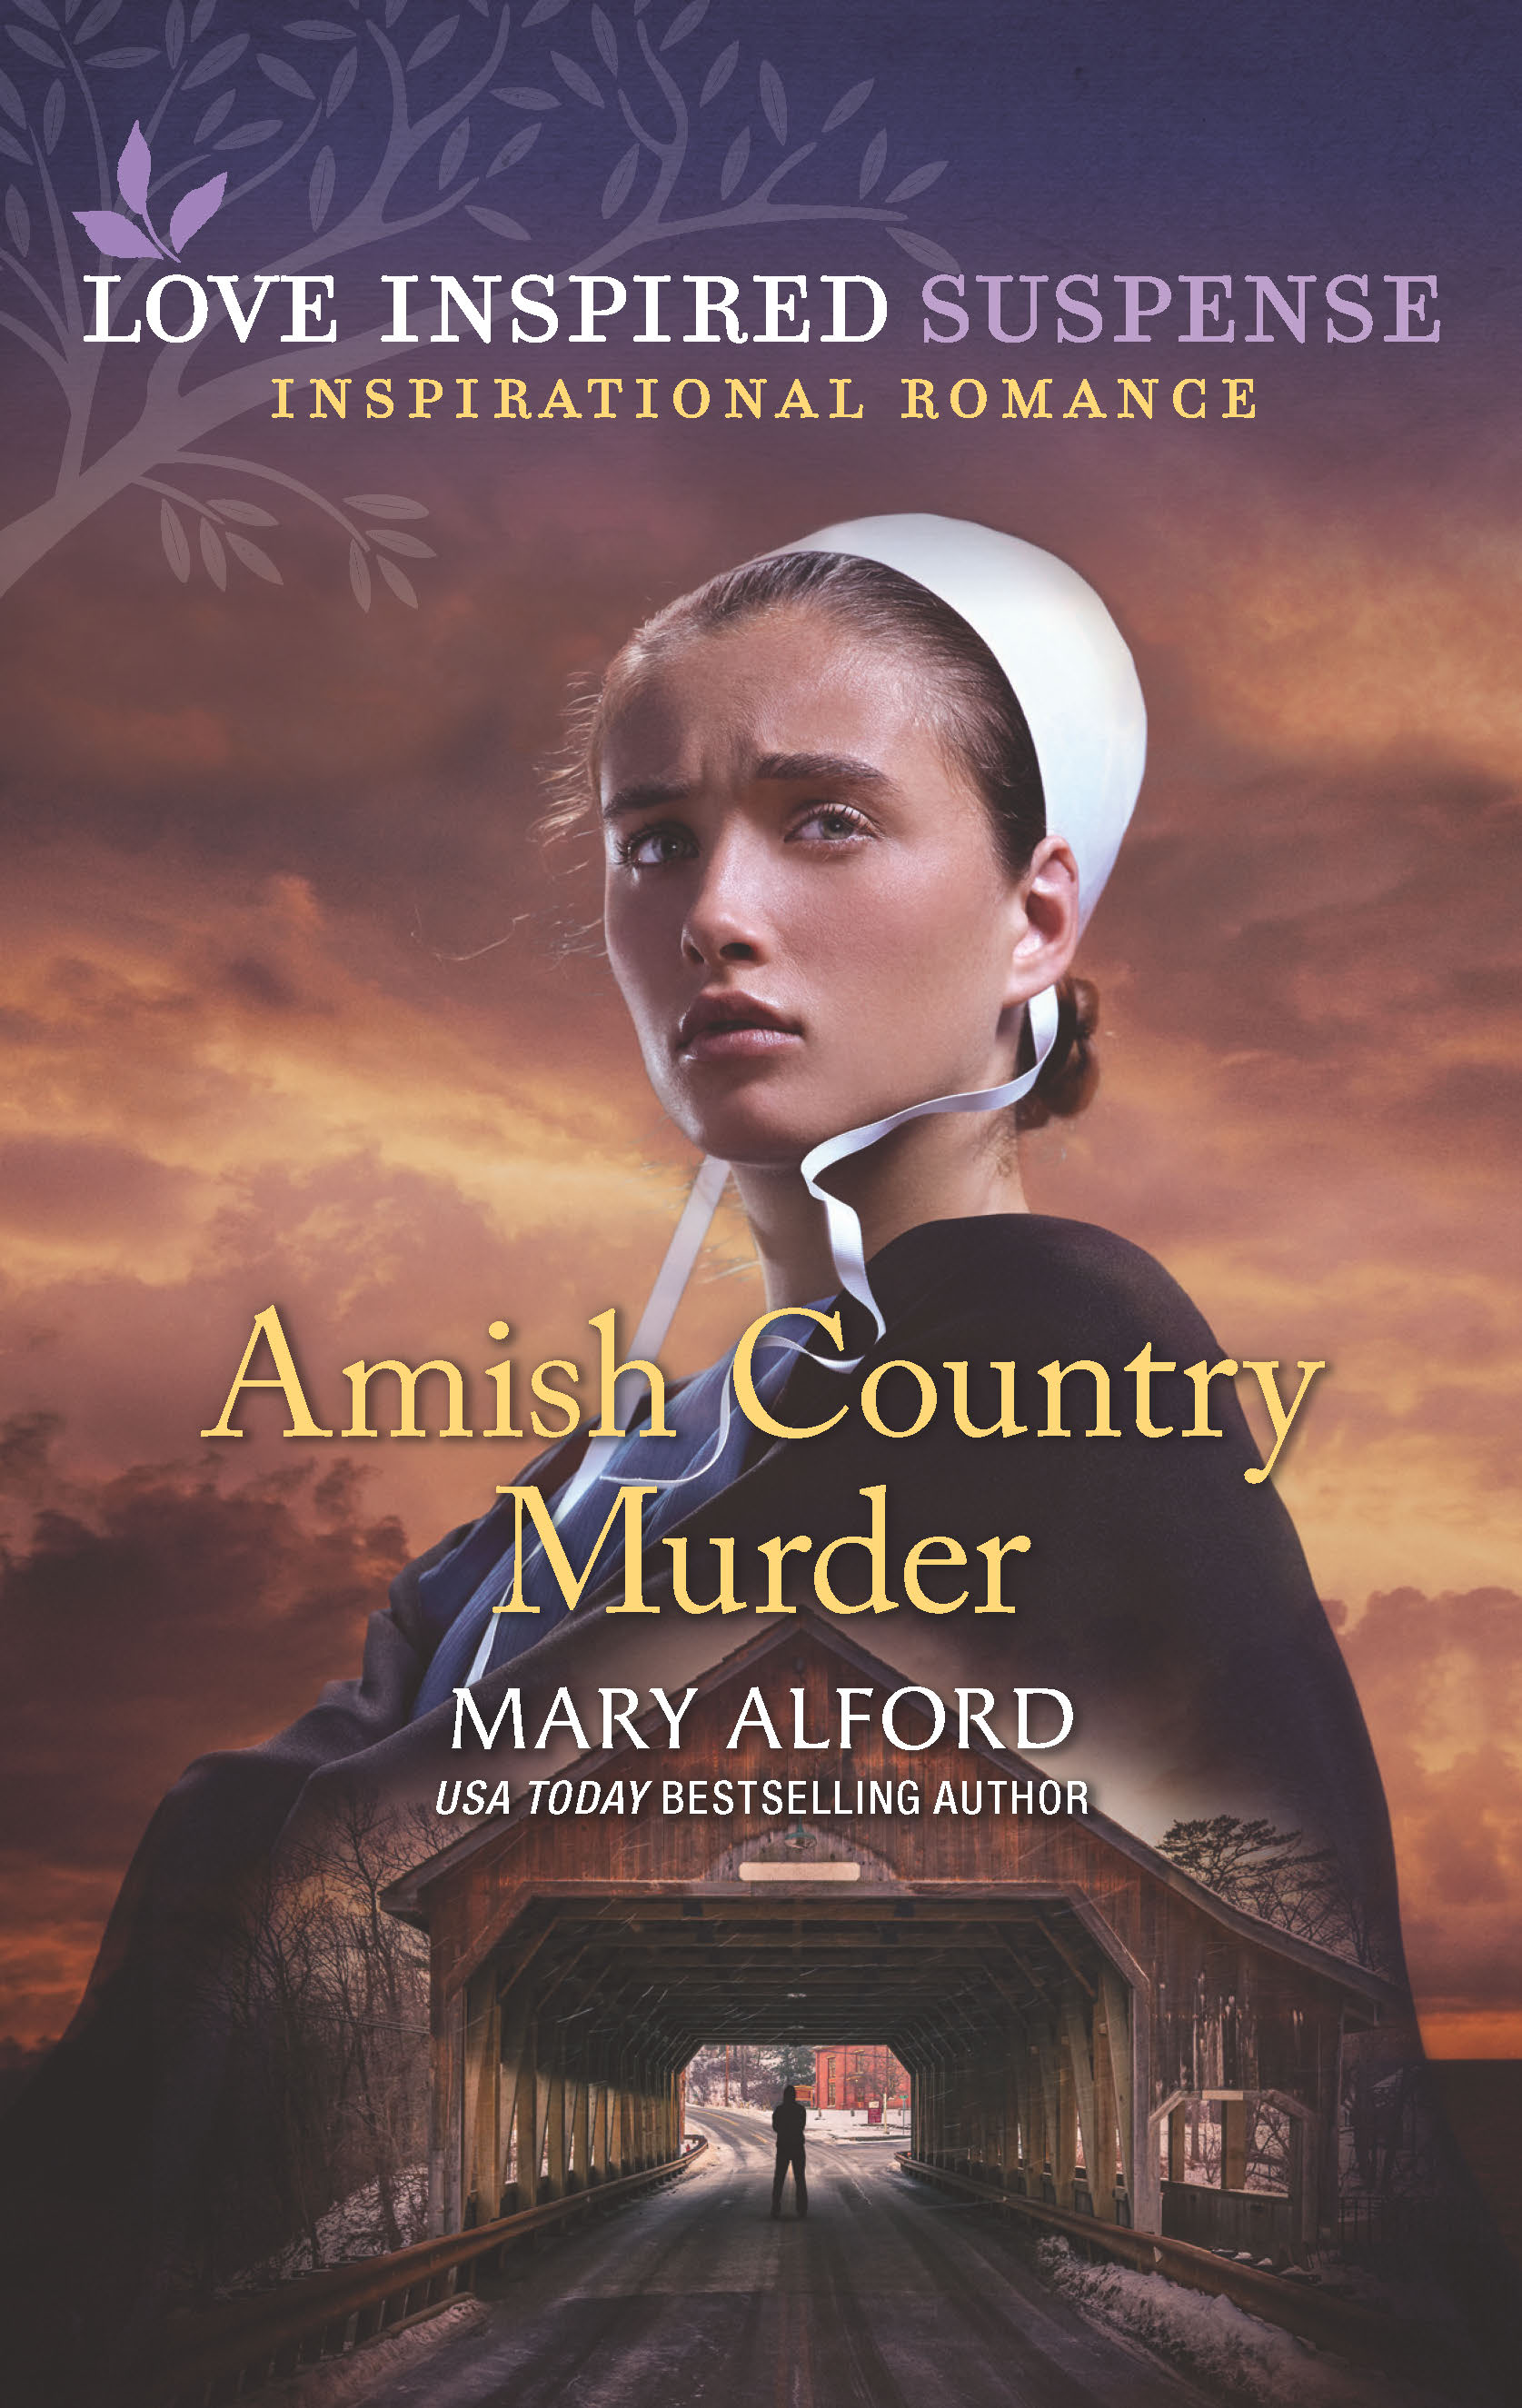 Amish Country Murder by Mary Alford